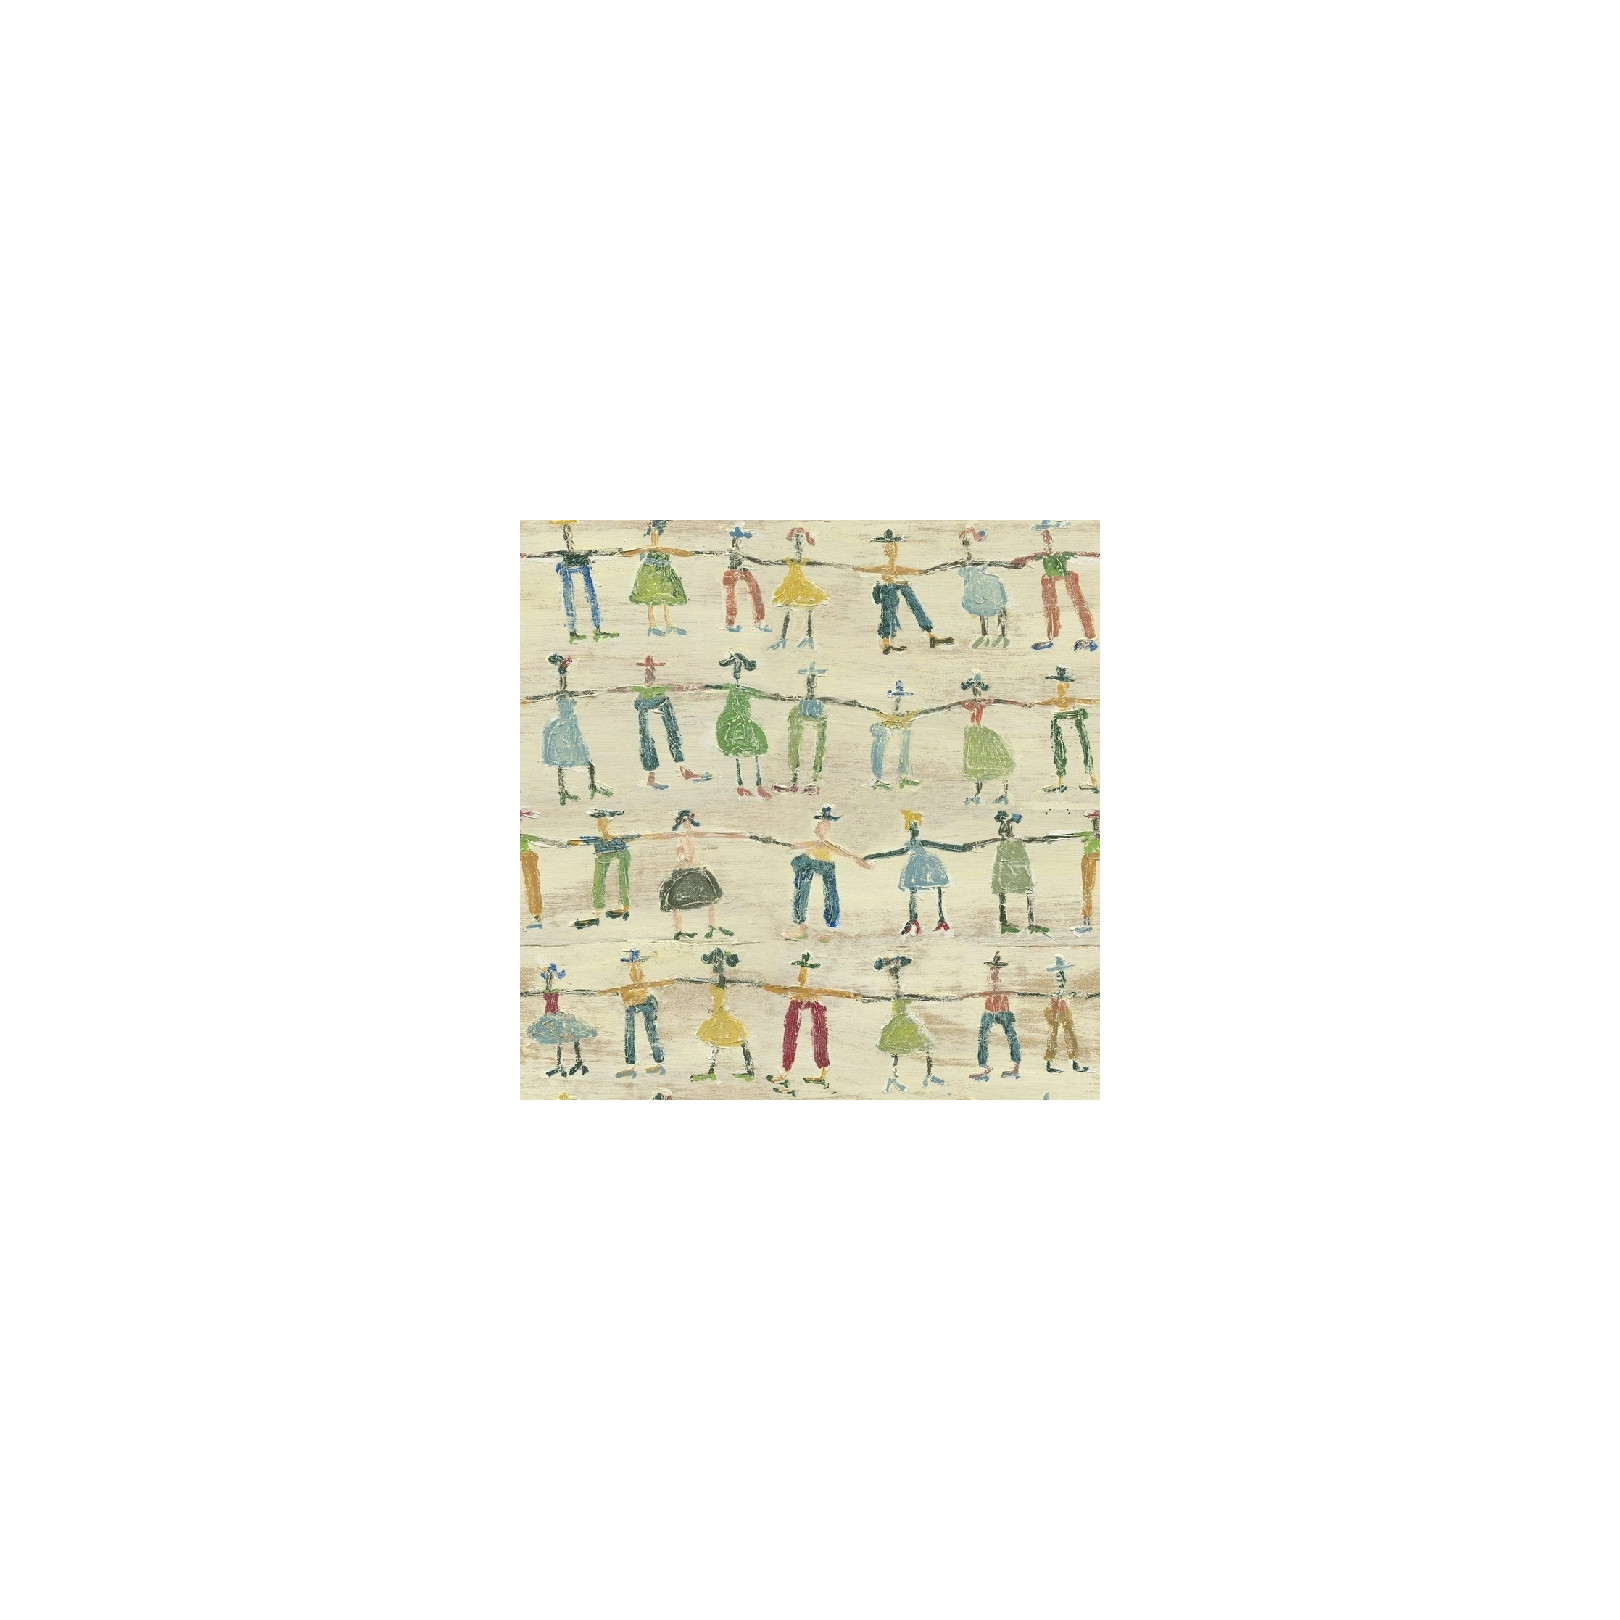 Papier peint - Mind The Gap - Little People - Blue, Green, Red, Taupe